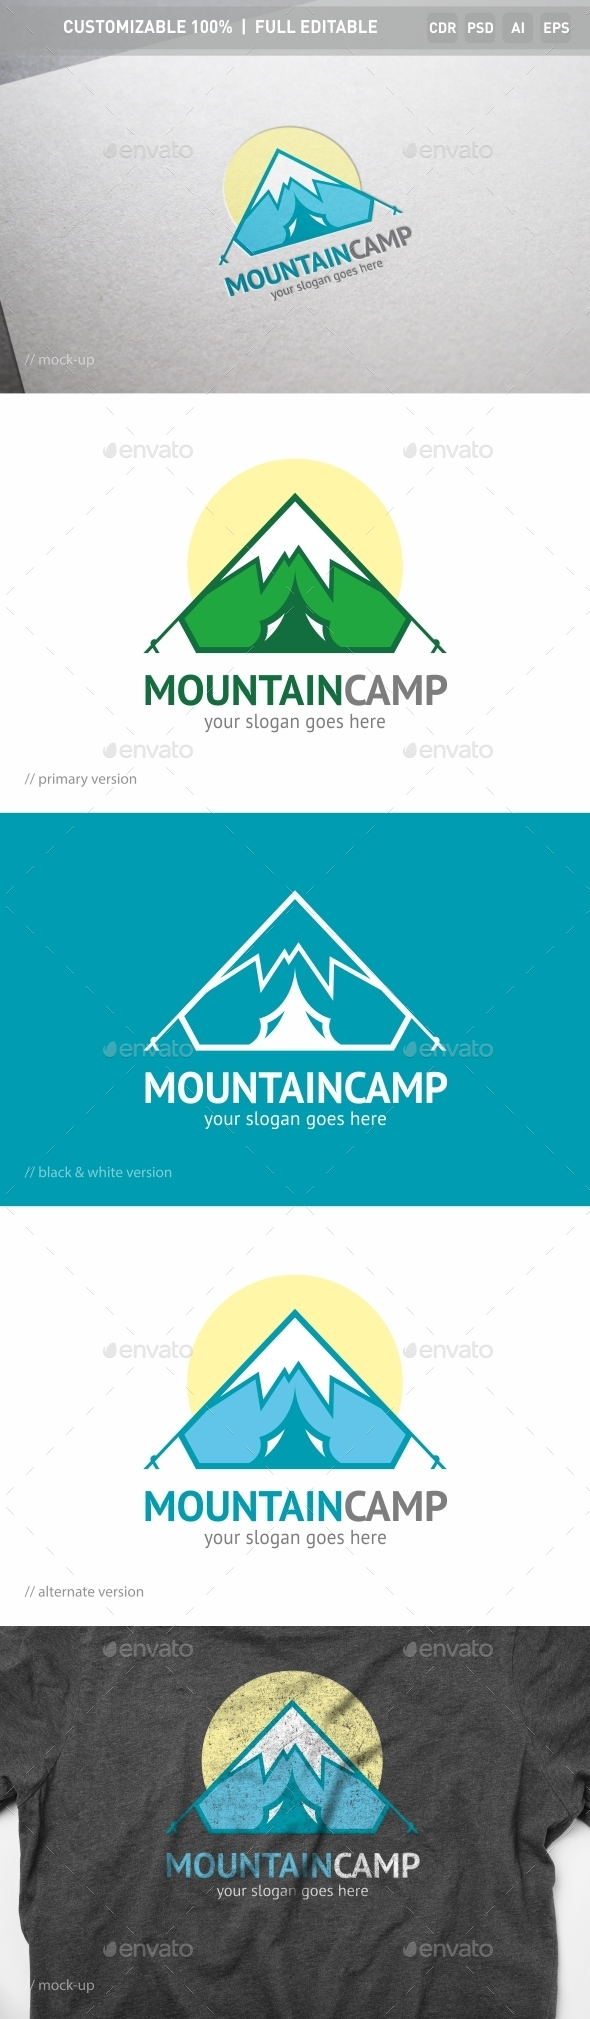 Mountain Camp Logo Template - Objects Logo Templates